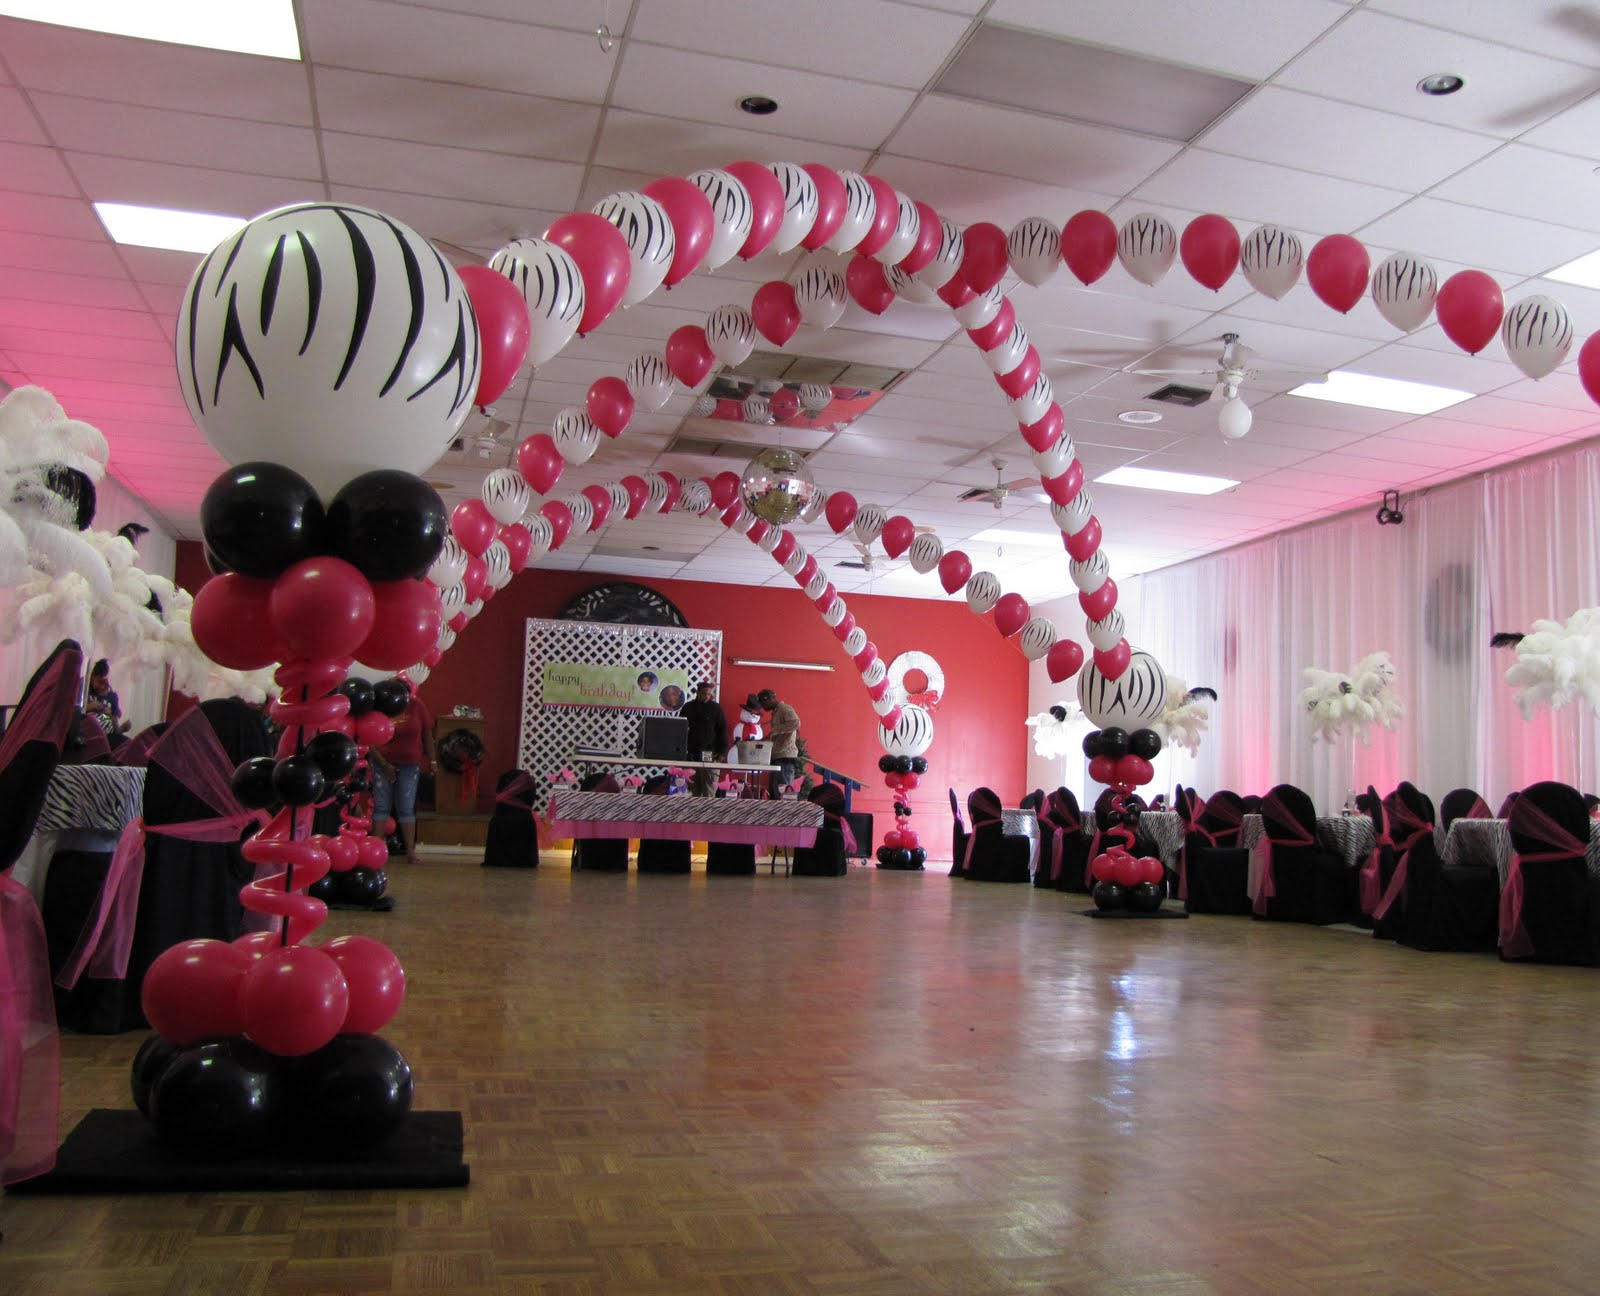 Party people event decorating company december 2011 for Balloon decoration ideas for sweet 16